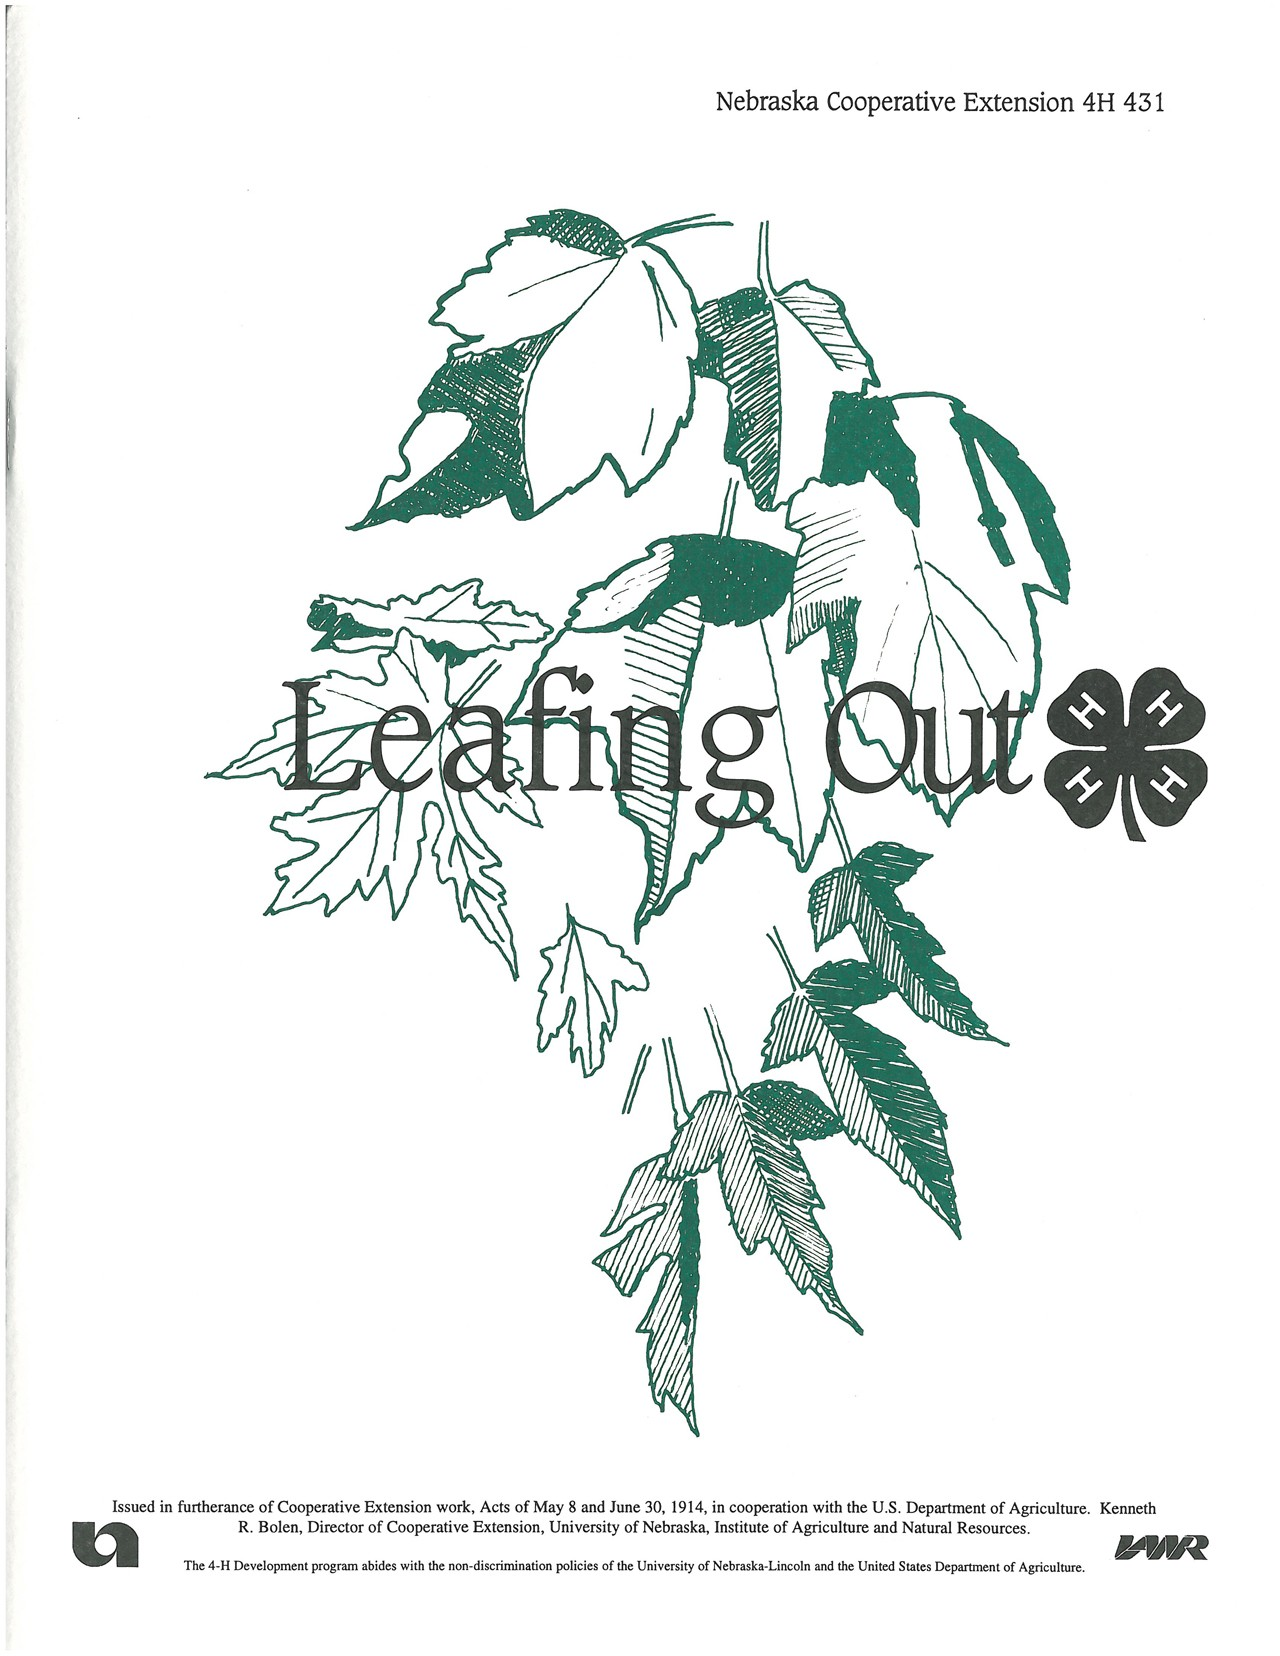 Leafing Out